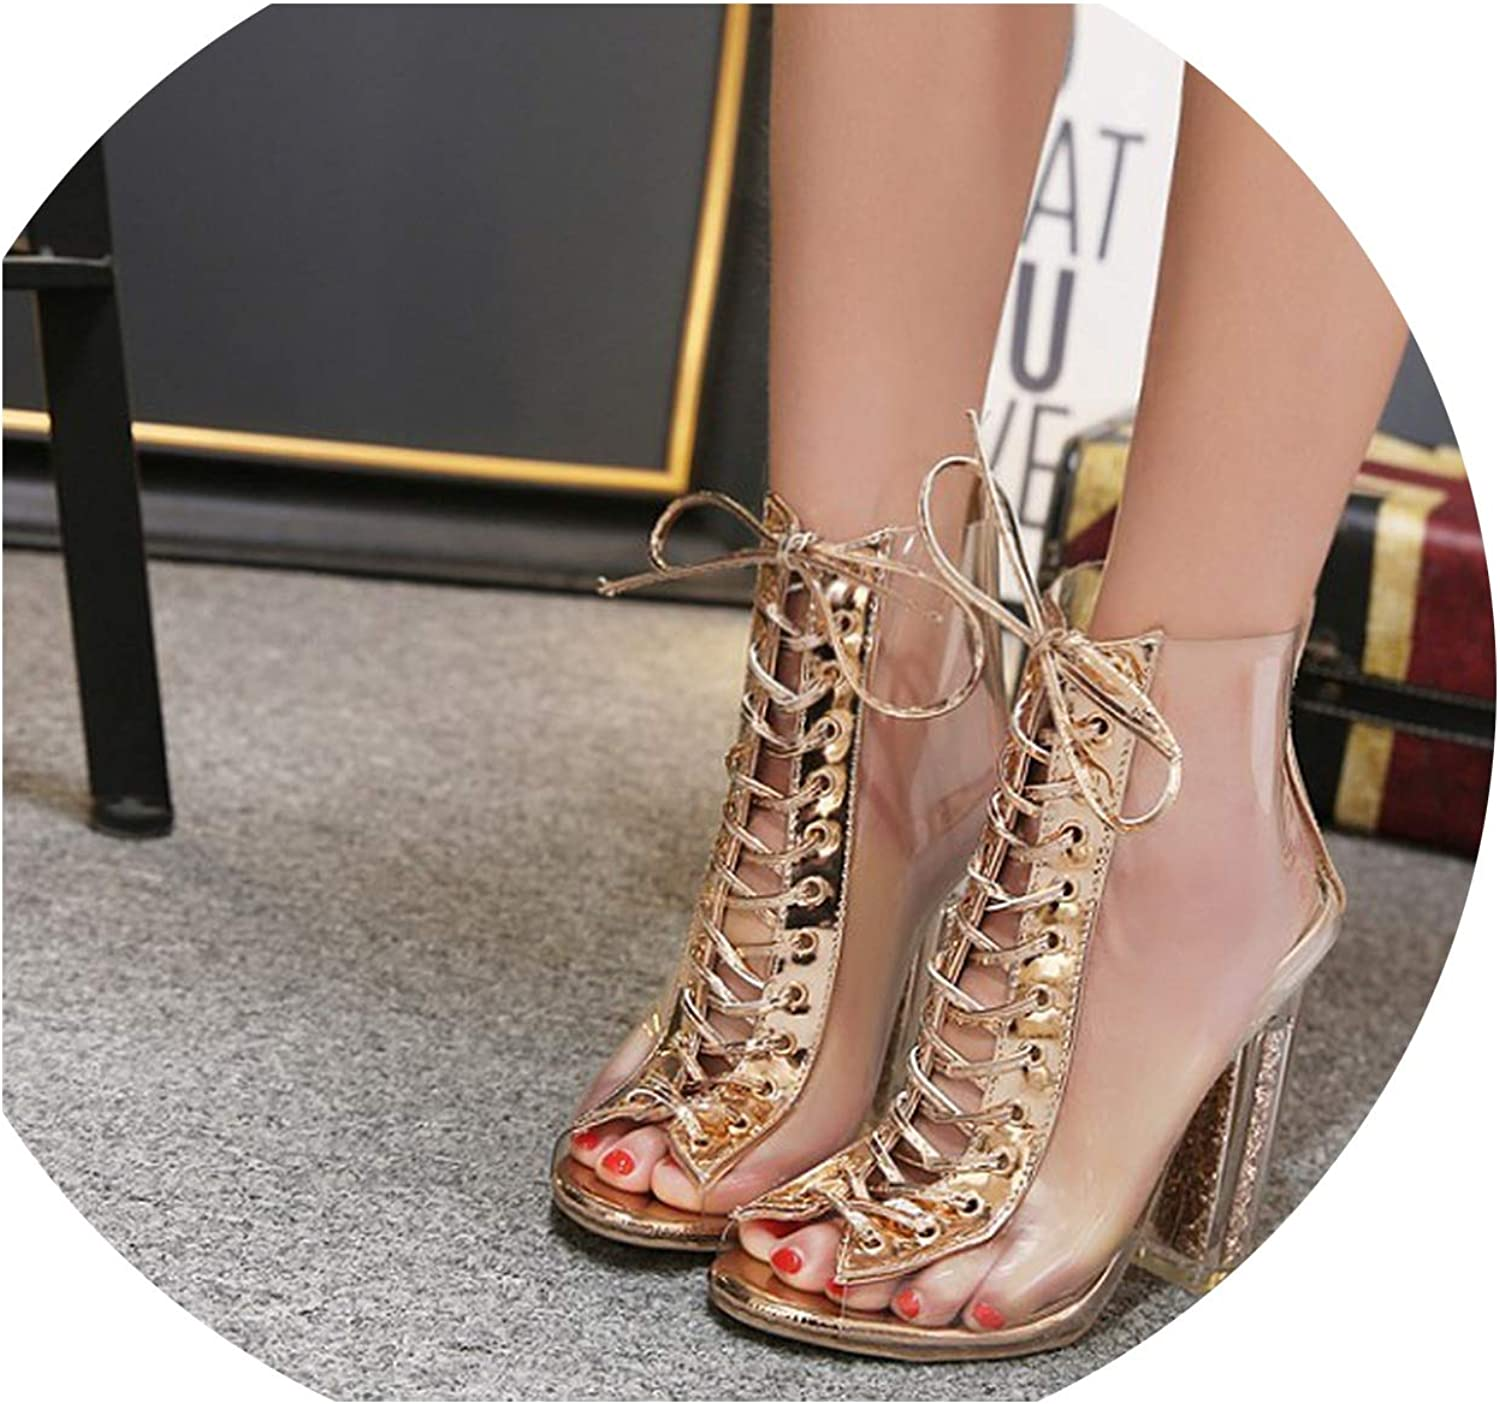 Sexy Women Summer Sandals Sequined shoes PVC Transparent Sandals Cross Strappy Peep Toe Clear Chunky Heels Ankle Boots,Clear,4.5